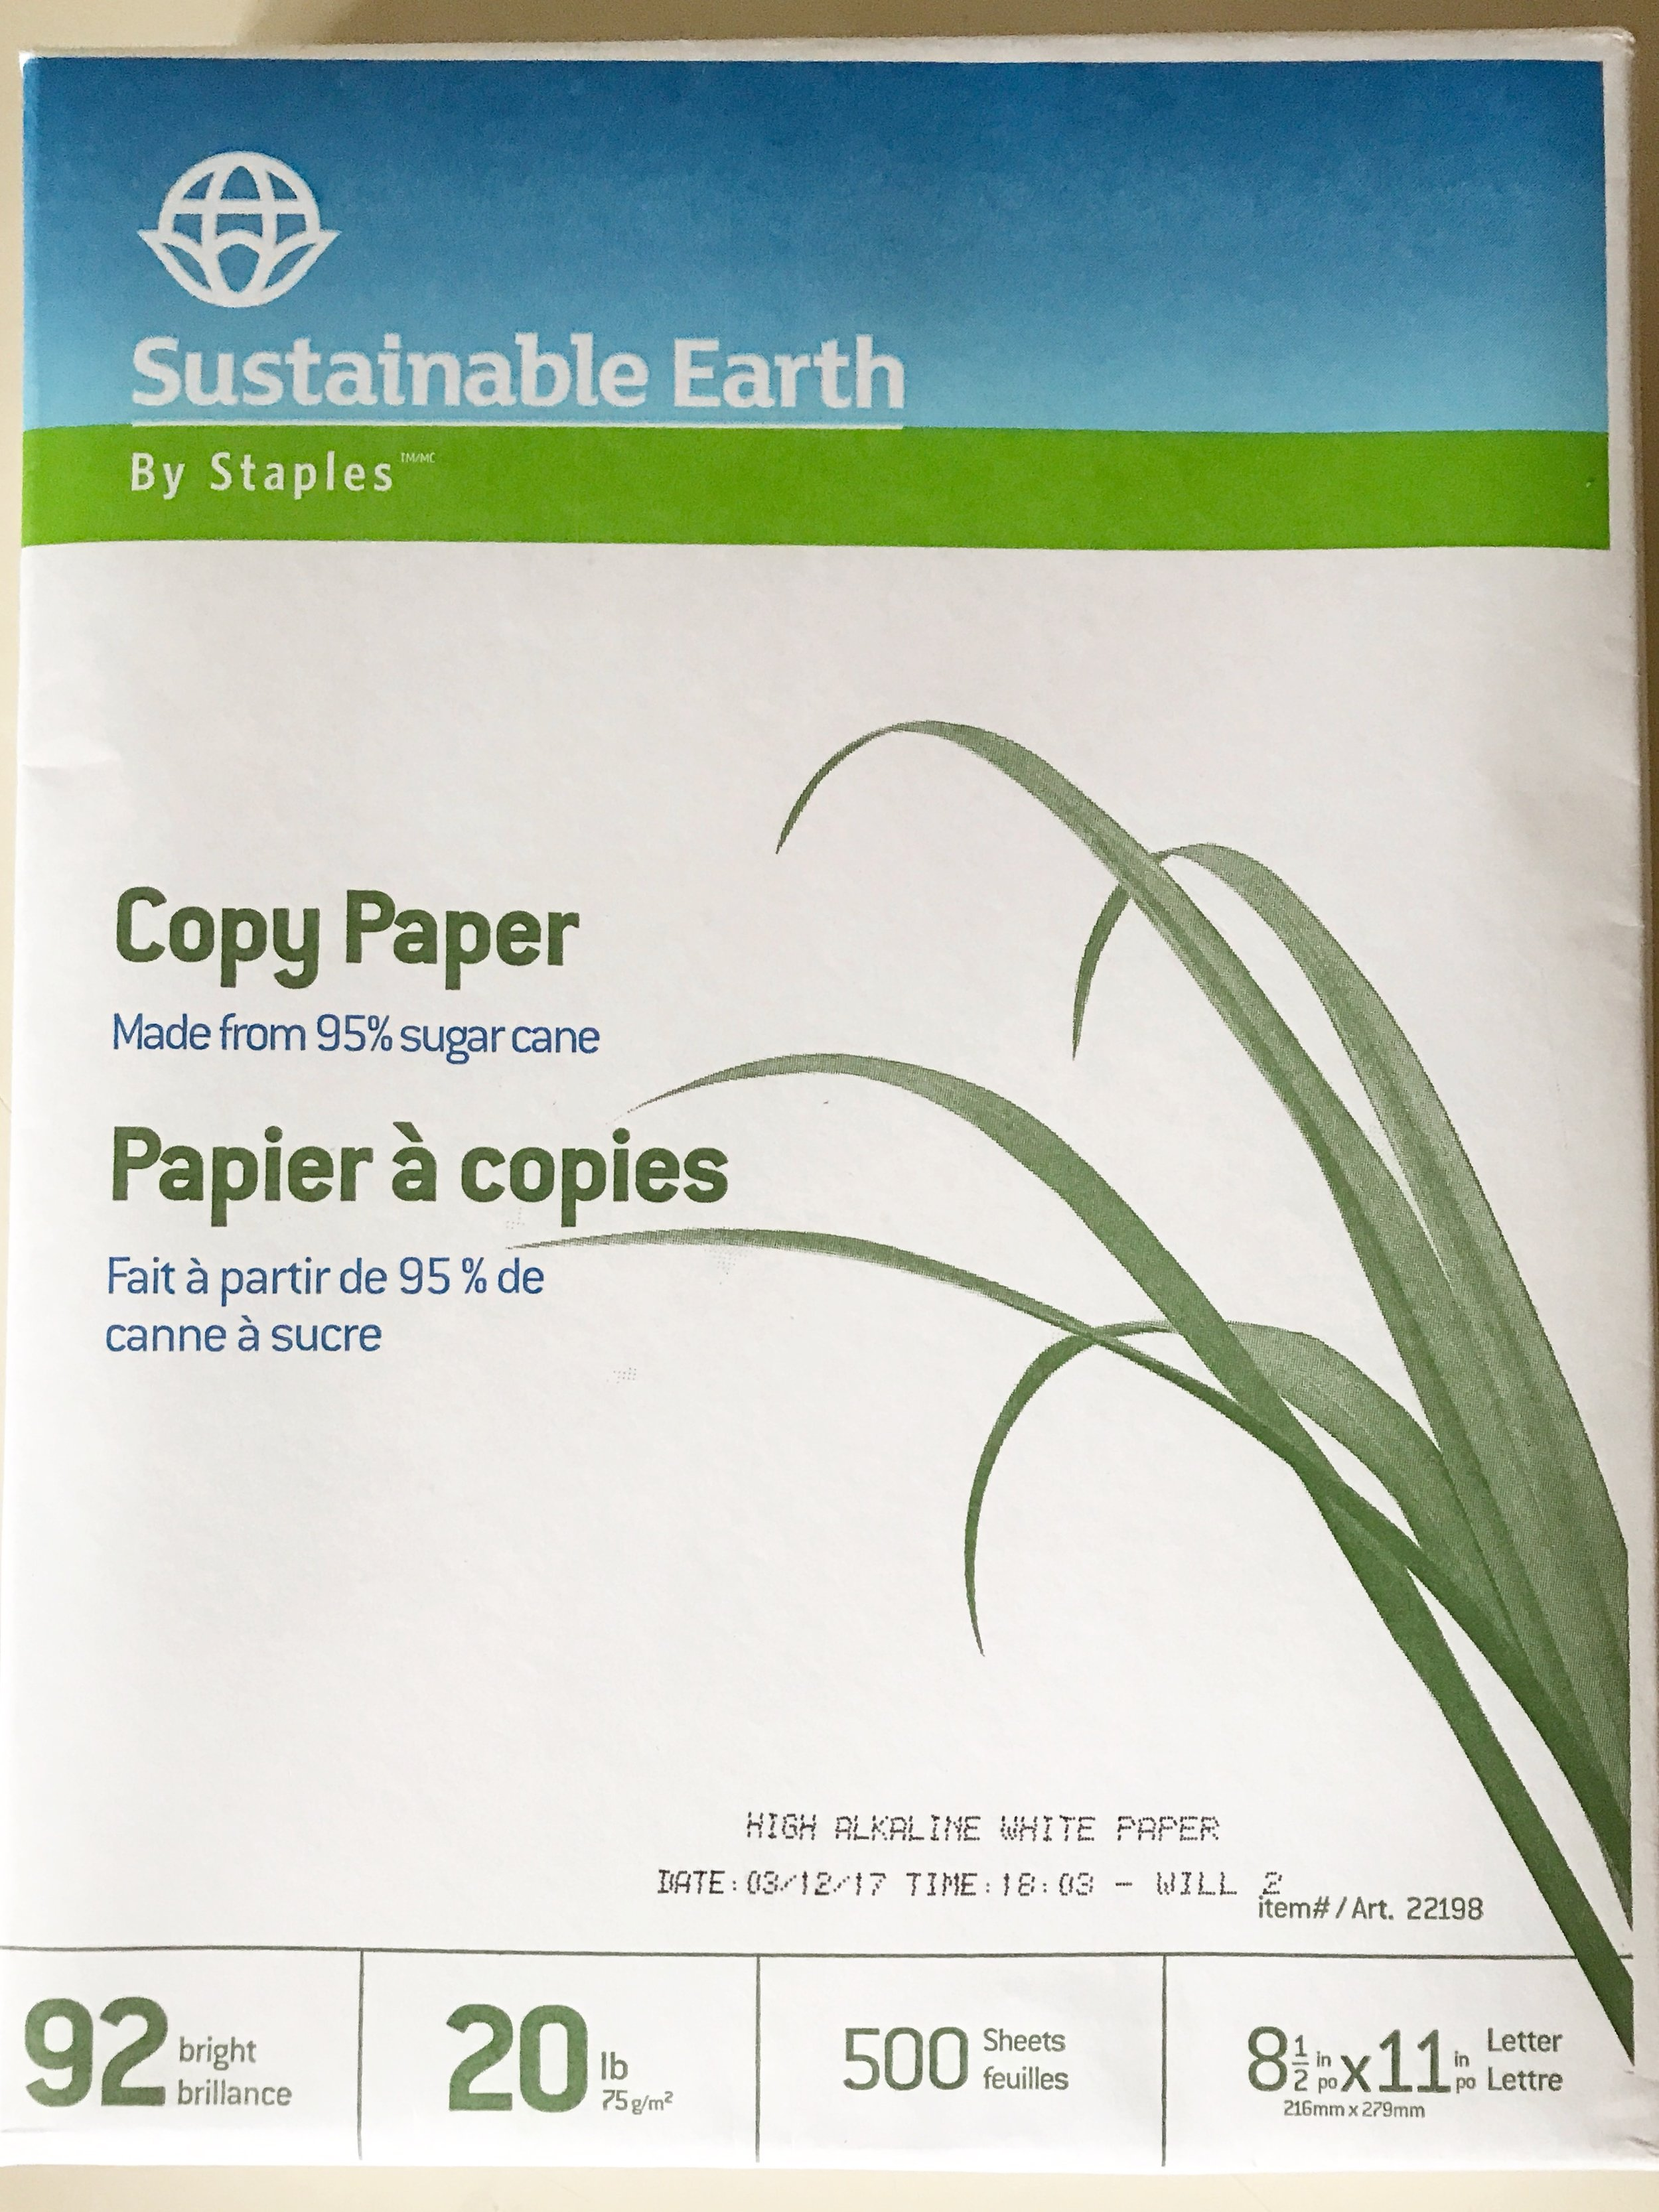 Sustainable Earth: - This paper is made by Staples. You can find the paper here at staples.com.